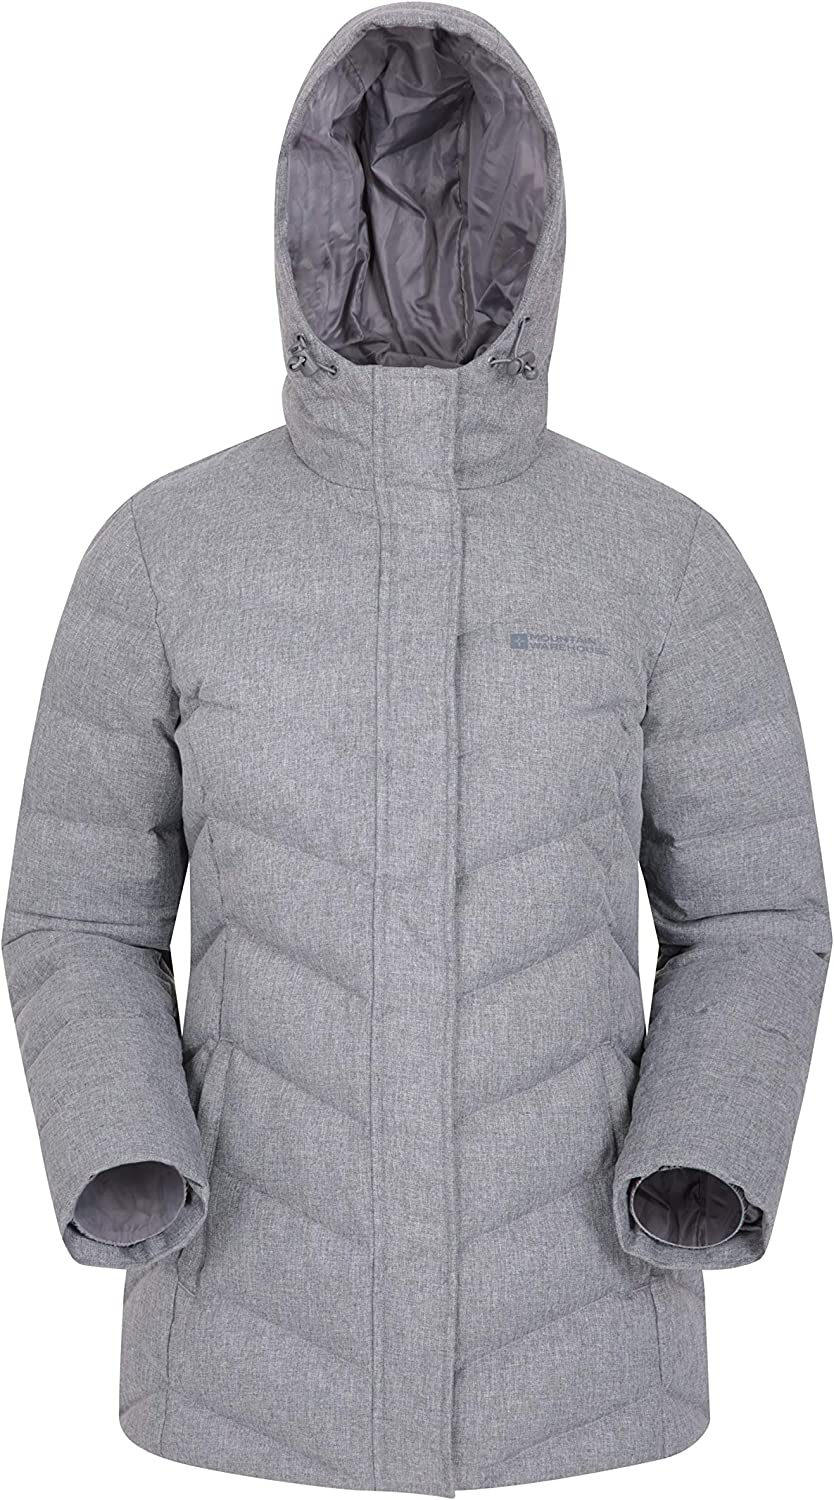 Daily Use Warm /& Cosy Puffer Jacket -for Winter Travelling Water Resistant Ladies Winter Coat Insulated Mountain Warehouse Ignite Womens Textured Down Jacket